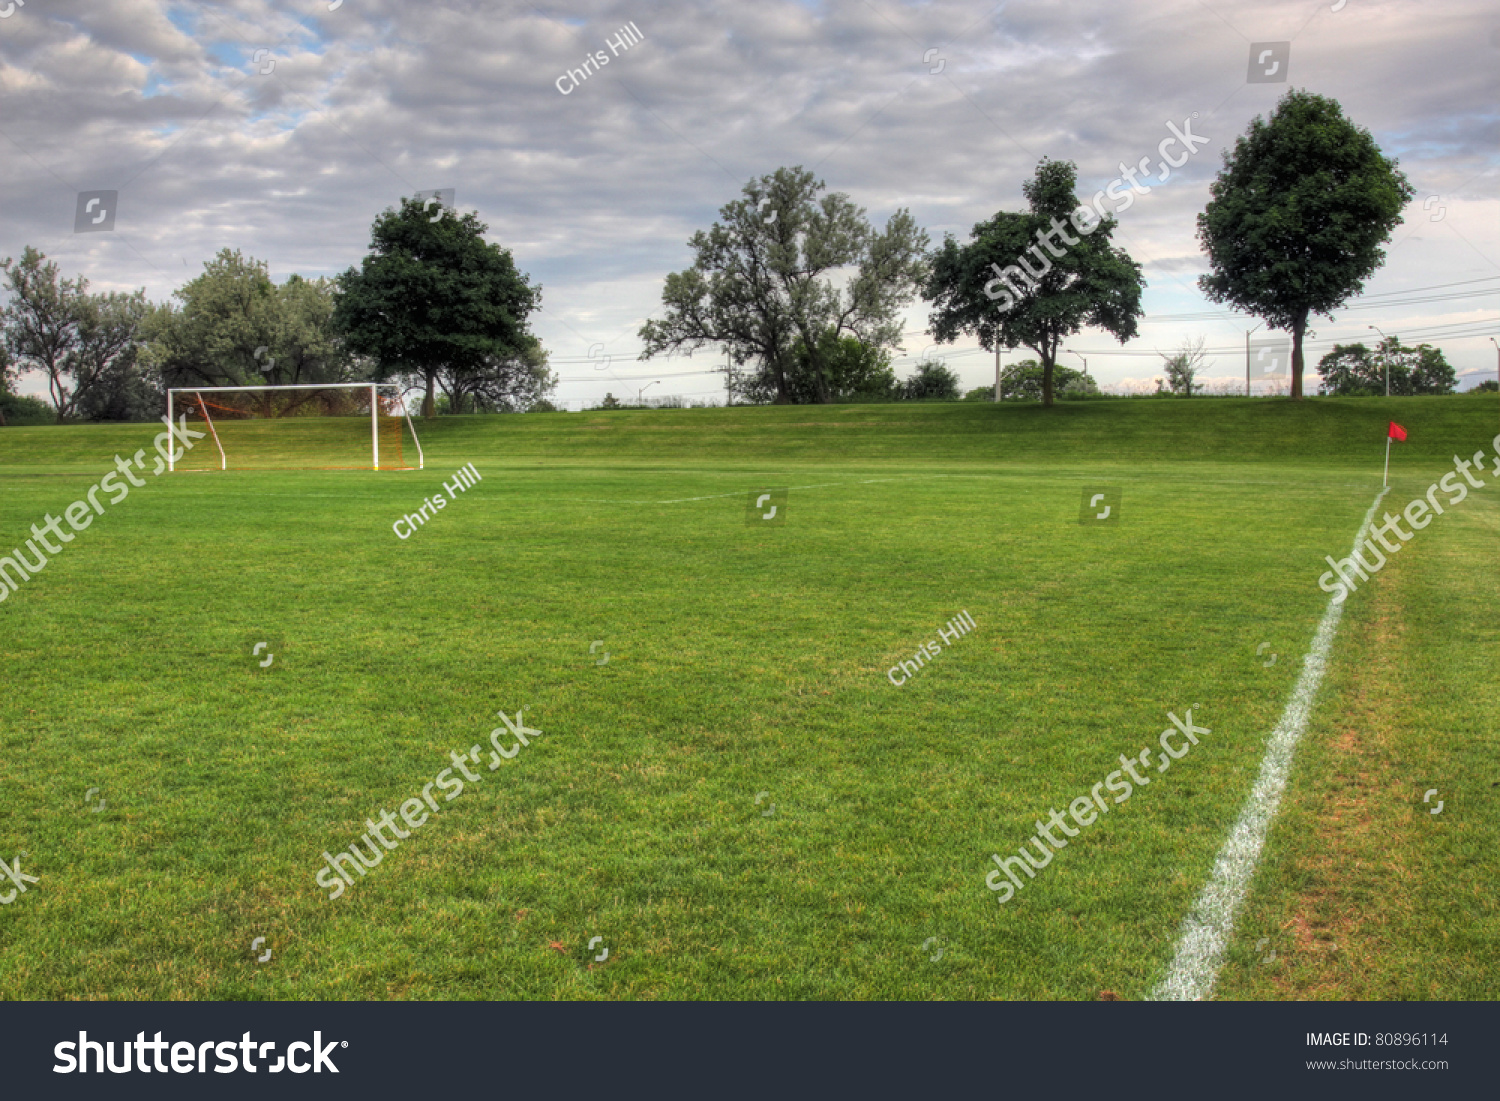 Cloudy unoccupied soccer field trees background stock photo a cloudy unoccupied soccer field with trees in the background hdr photograph altavistaventures Gallery